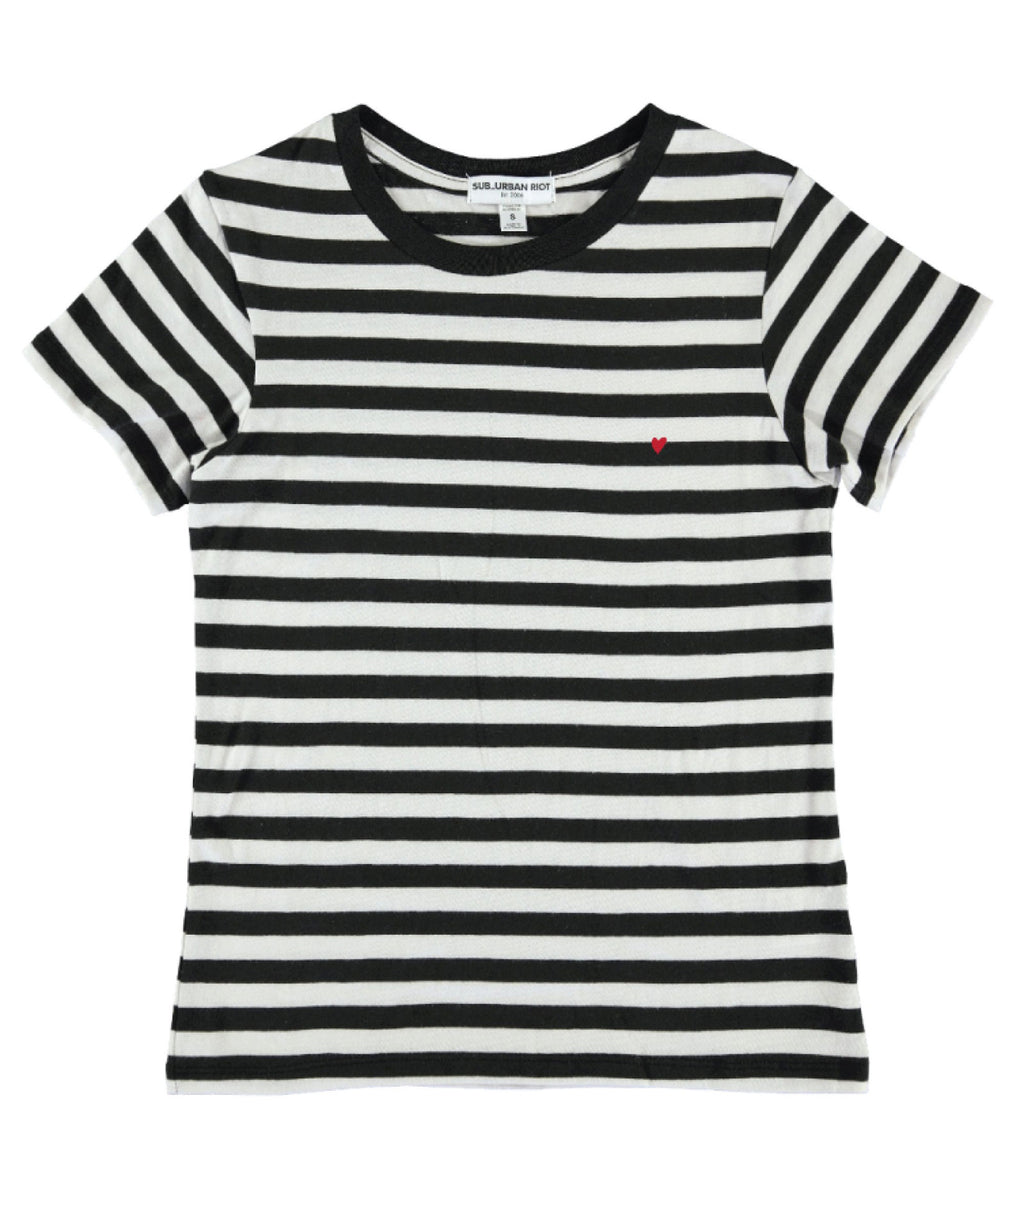 Sub_Urban Riot Girls Chelsea Striped Tee